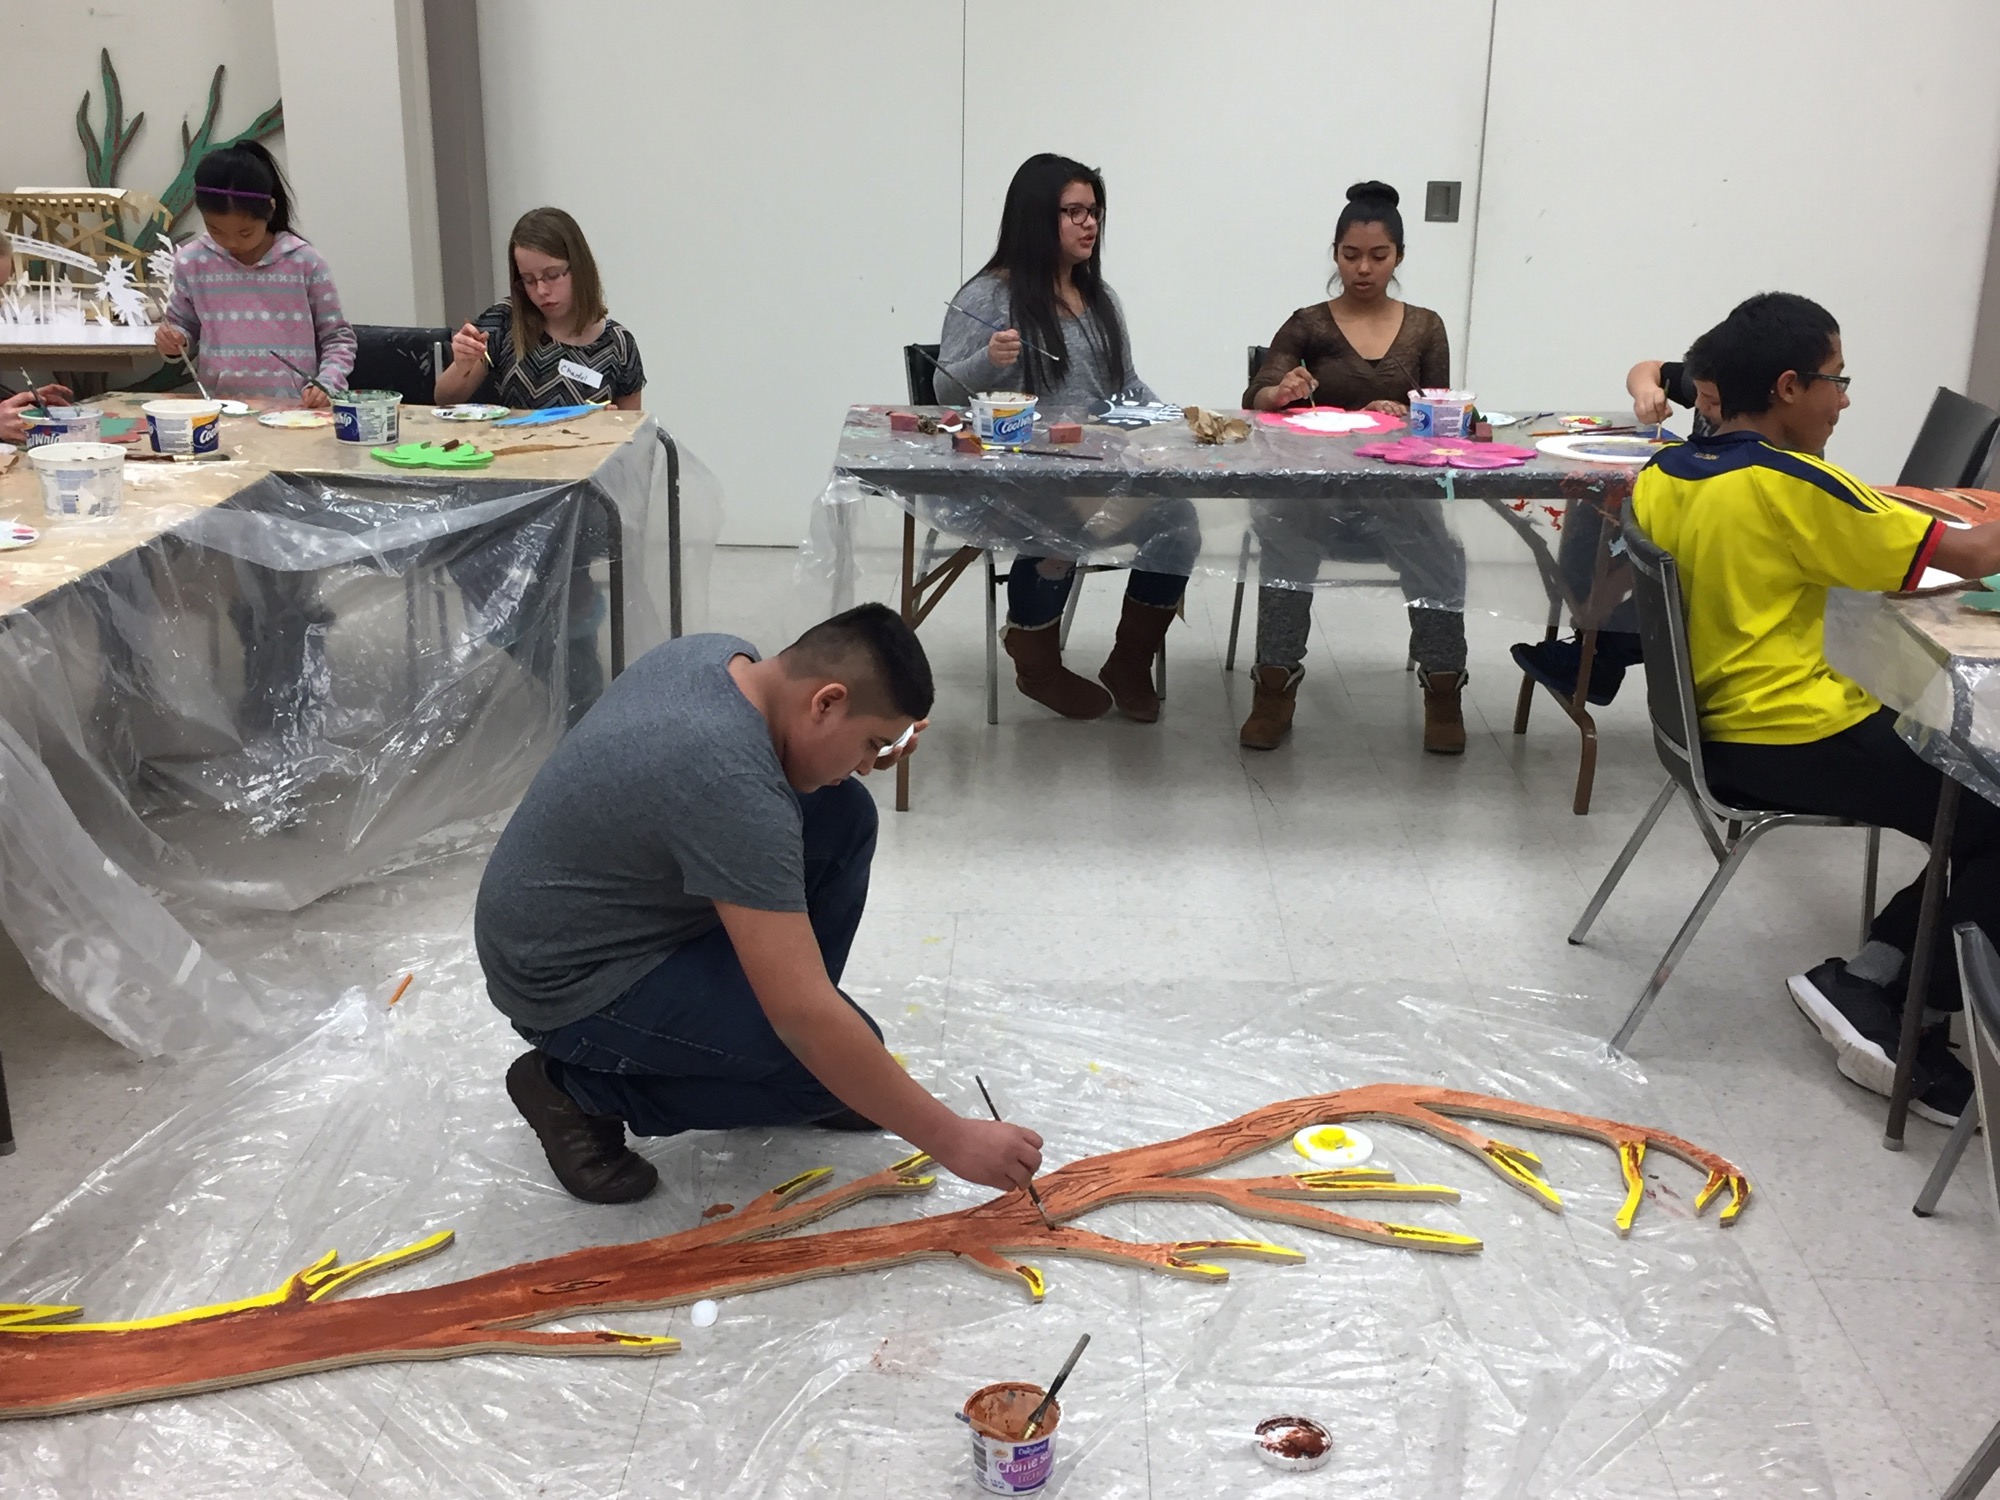 Artists prepare pieces for the Winter Gardens art project at the Art Gallery of Southwestern Manitoba.